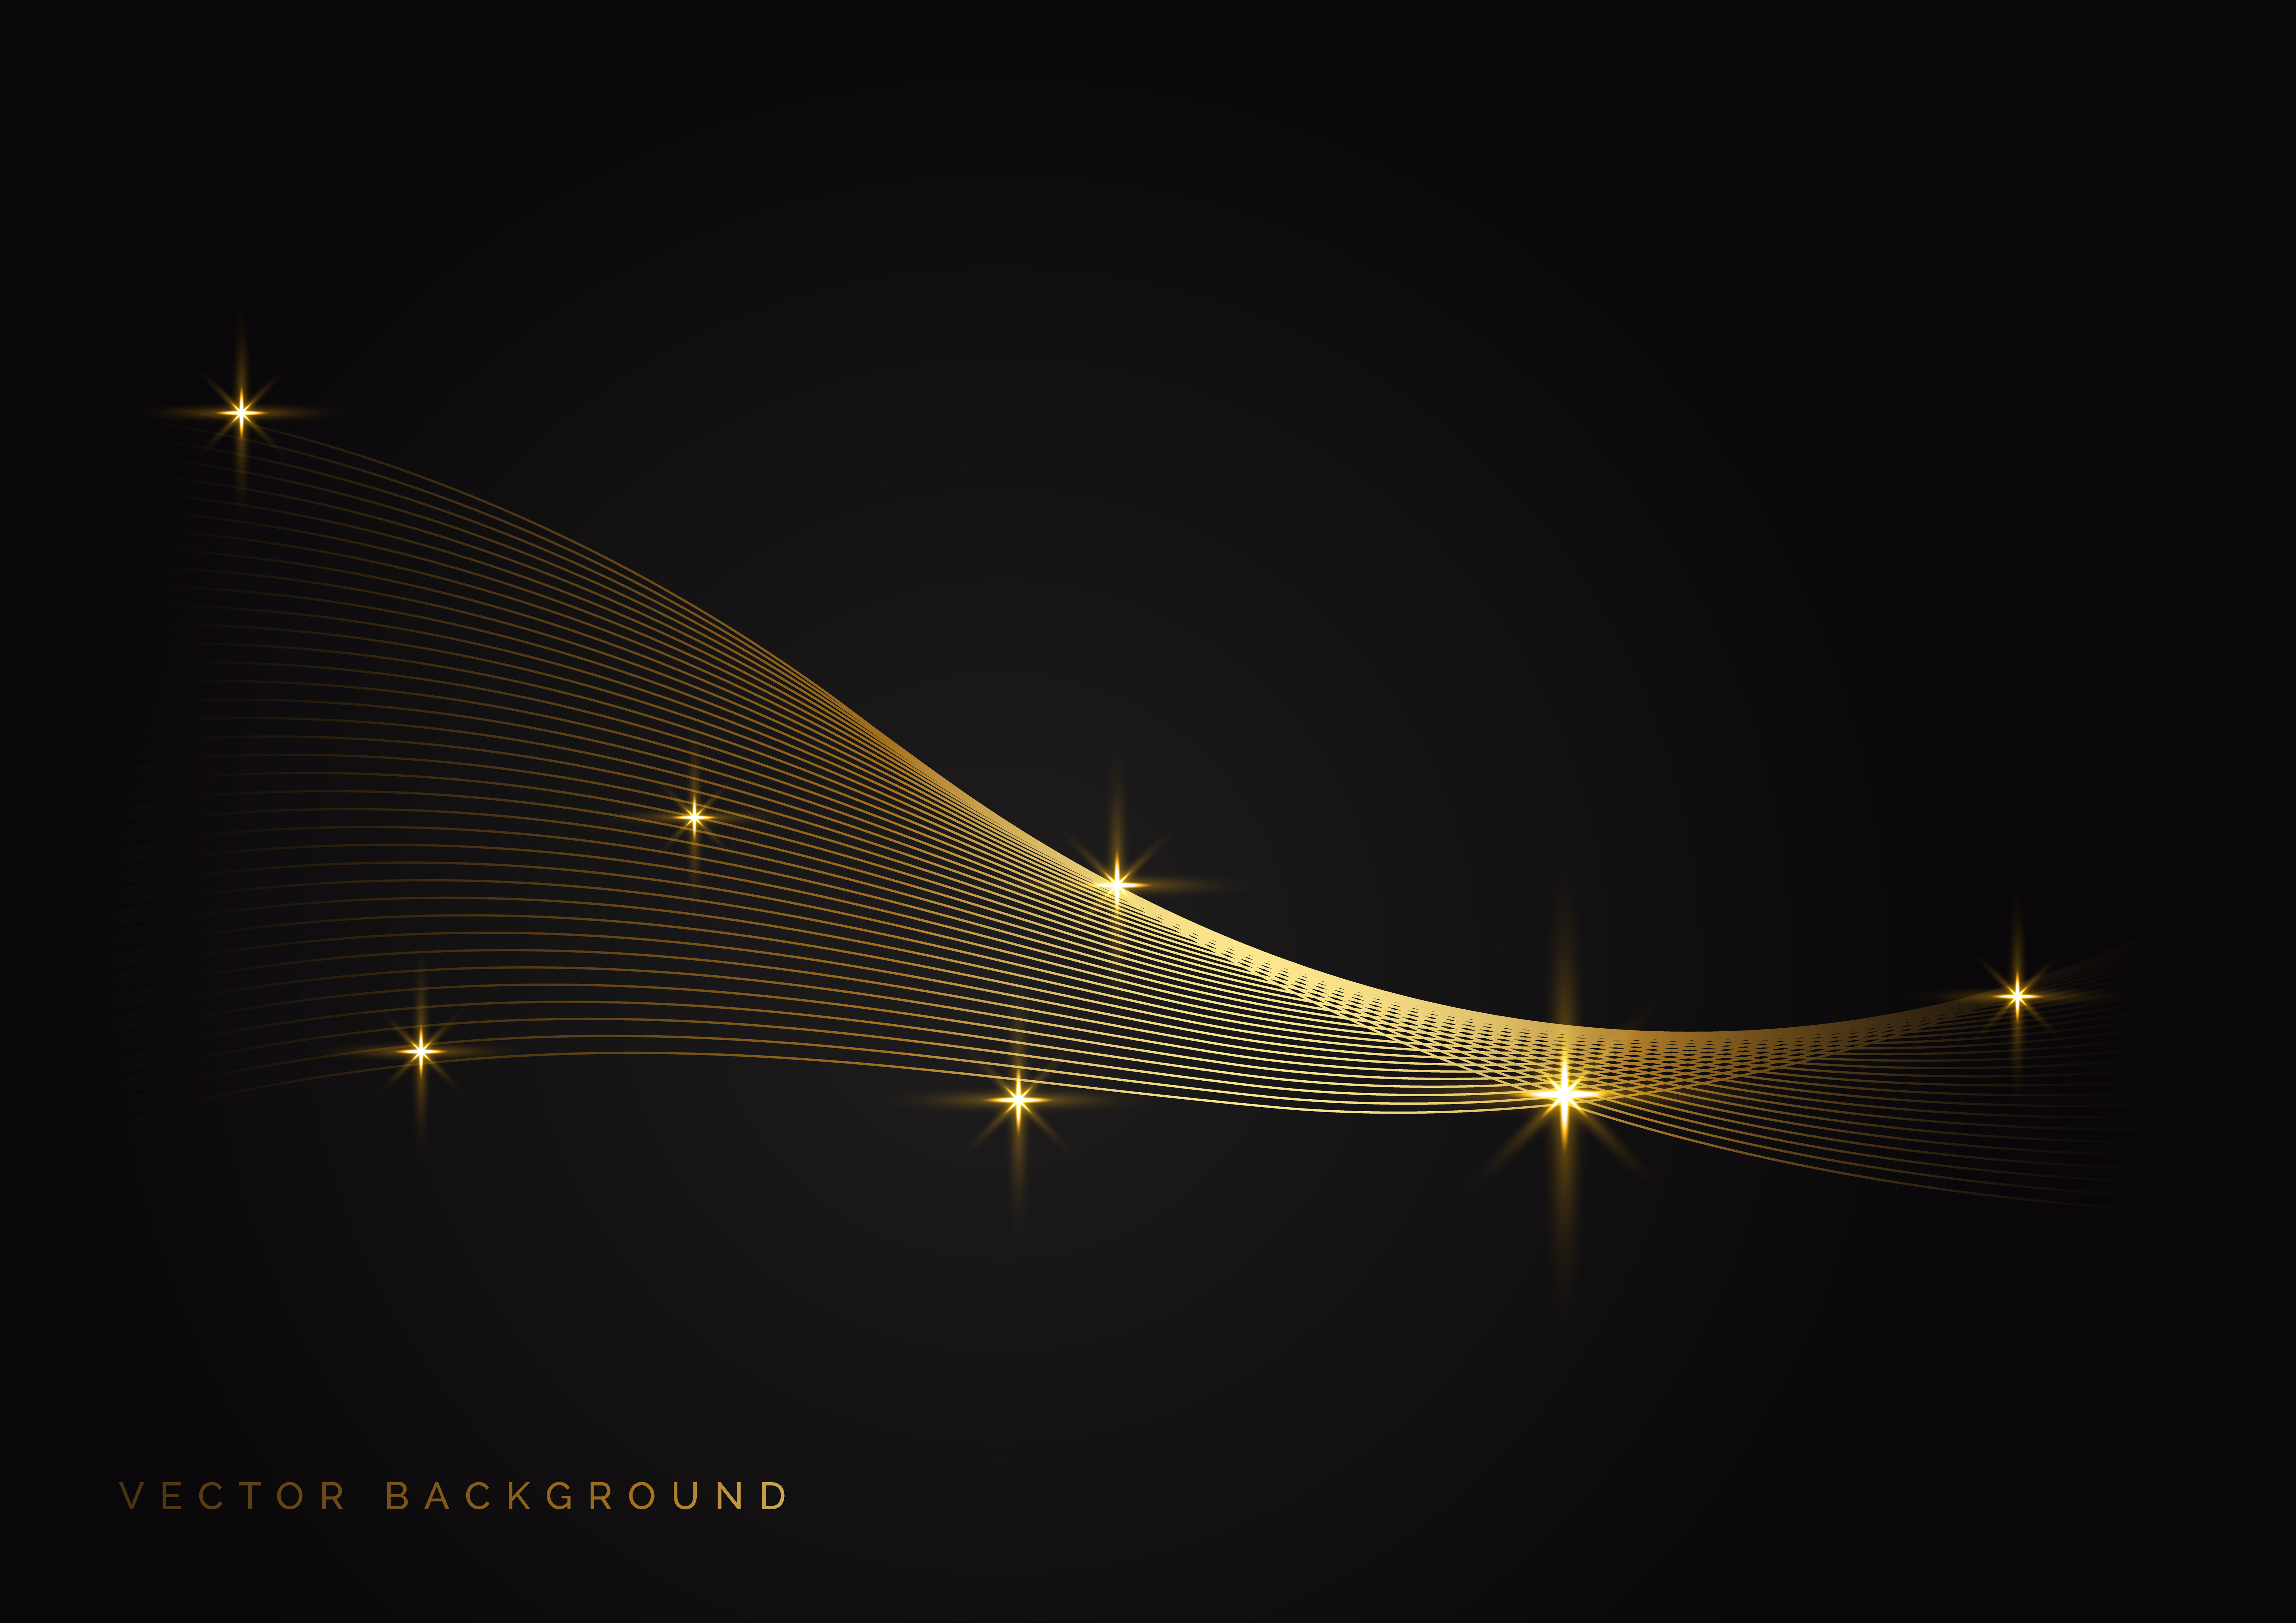 Abstract Golden Wave On Dark Background With Light Effect Download Free Vectors Clipart Graphics Vector Art